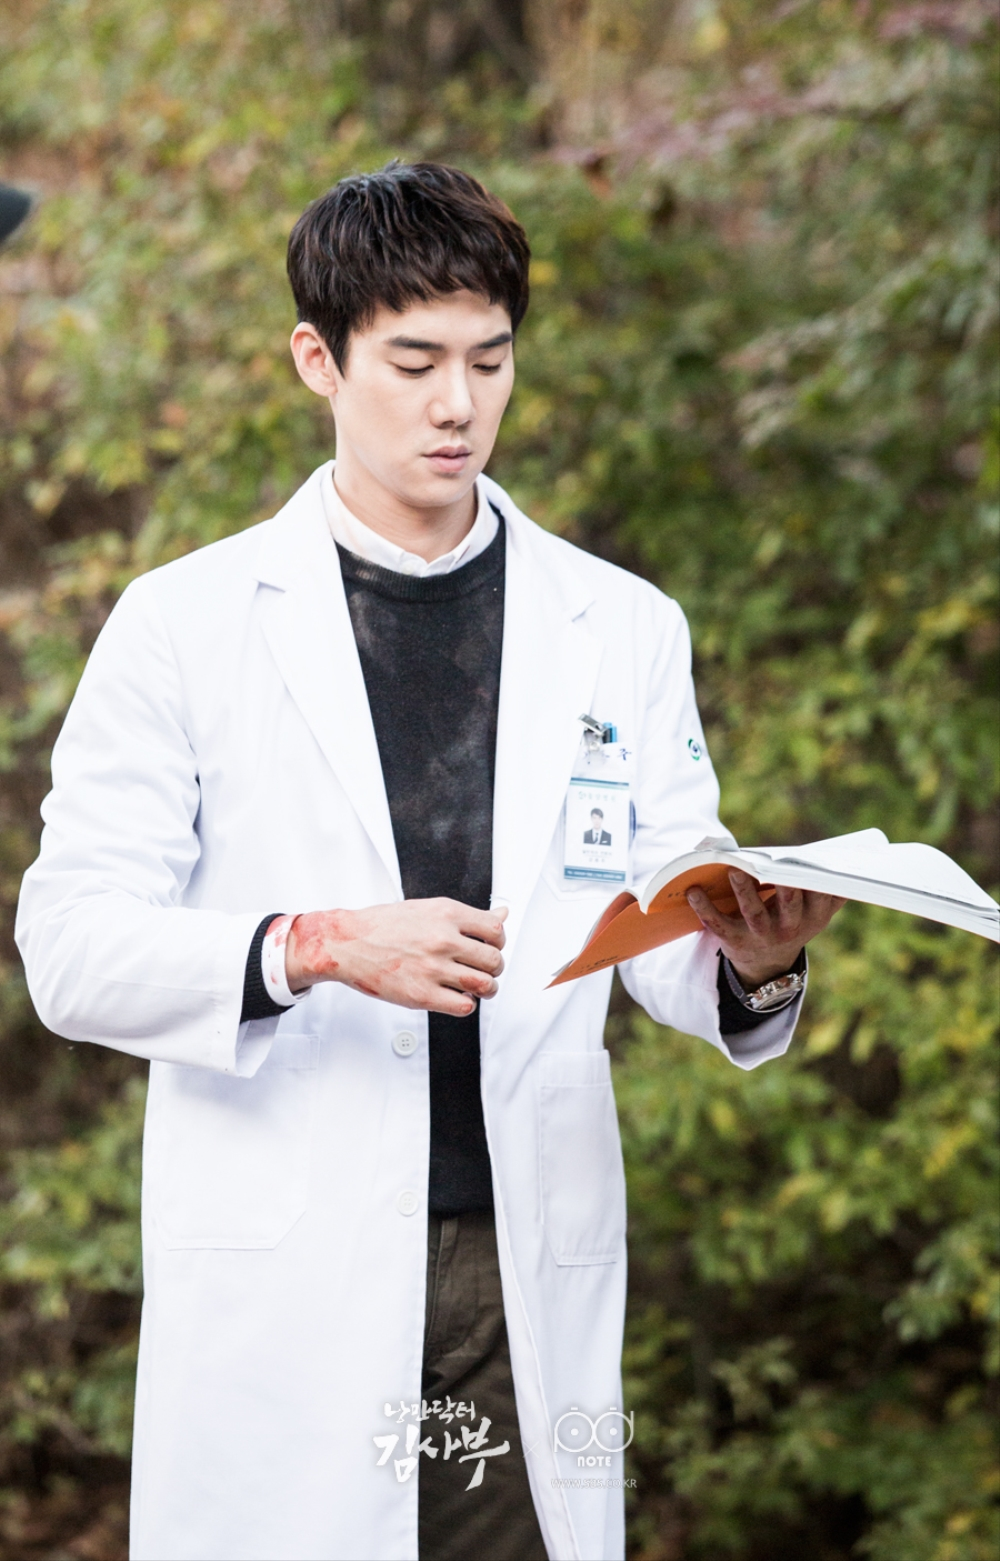 Bloody-handed Dong-ju, studying the script again. #Script_genius